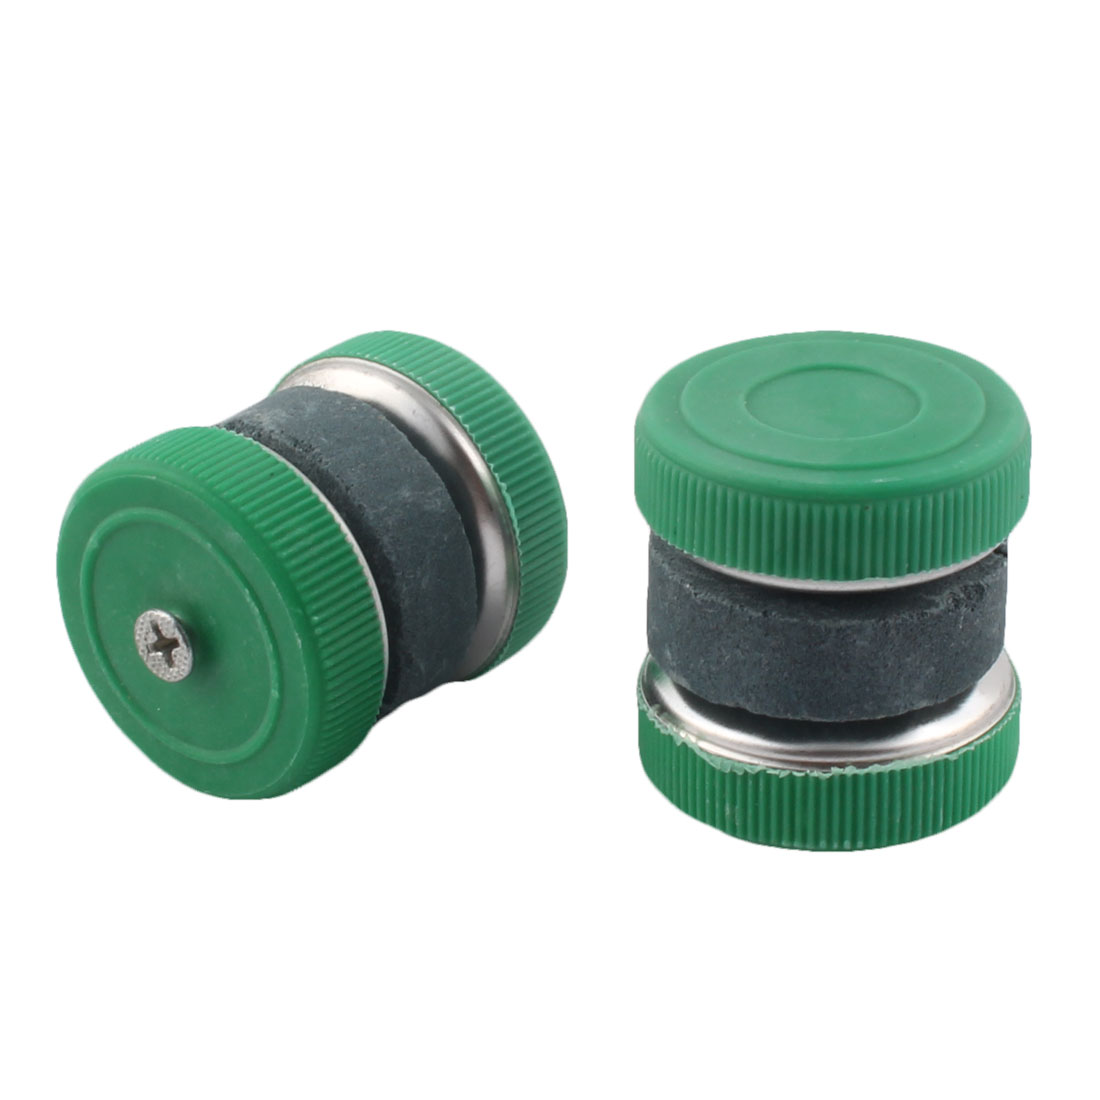 Household Cutter Scissors Grinder Whetstone Sharpener Tool Green Gray 2pcs by Unique-Bargains